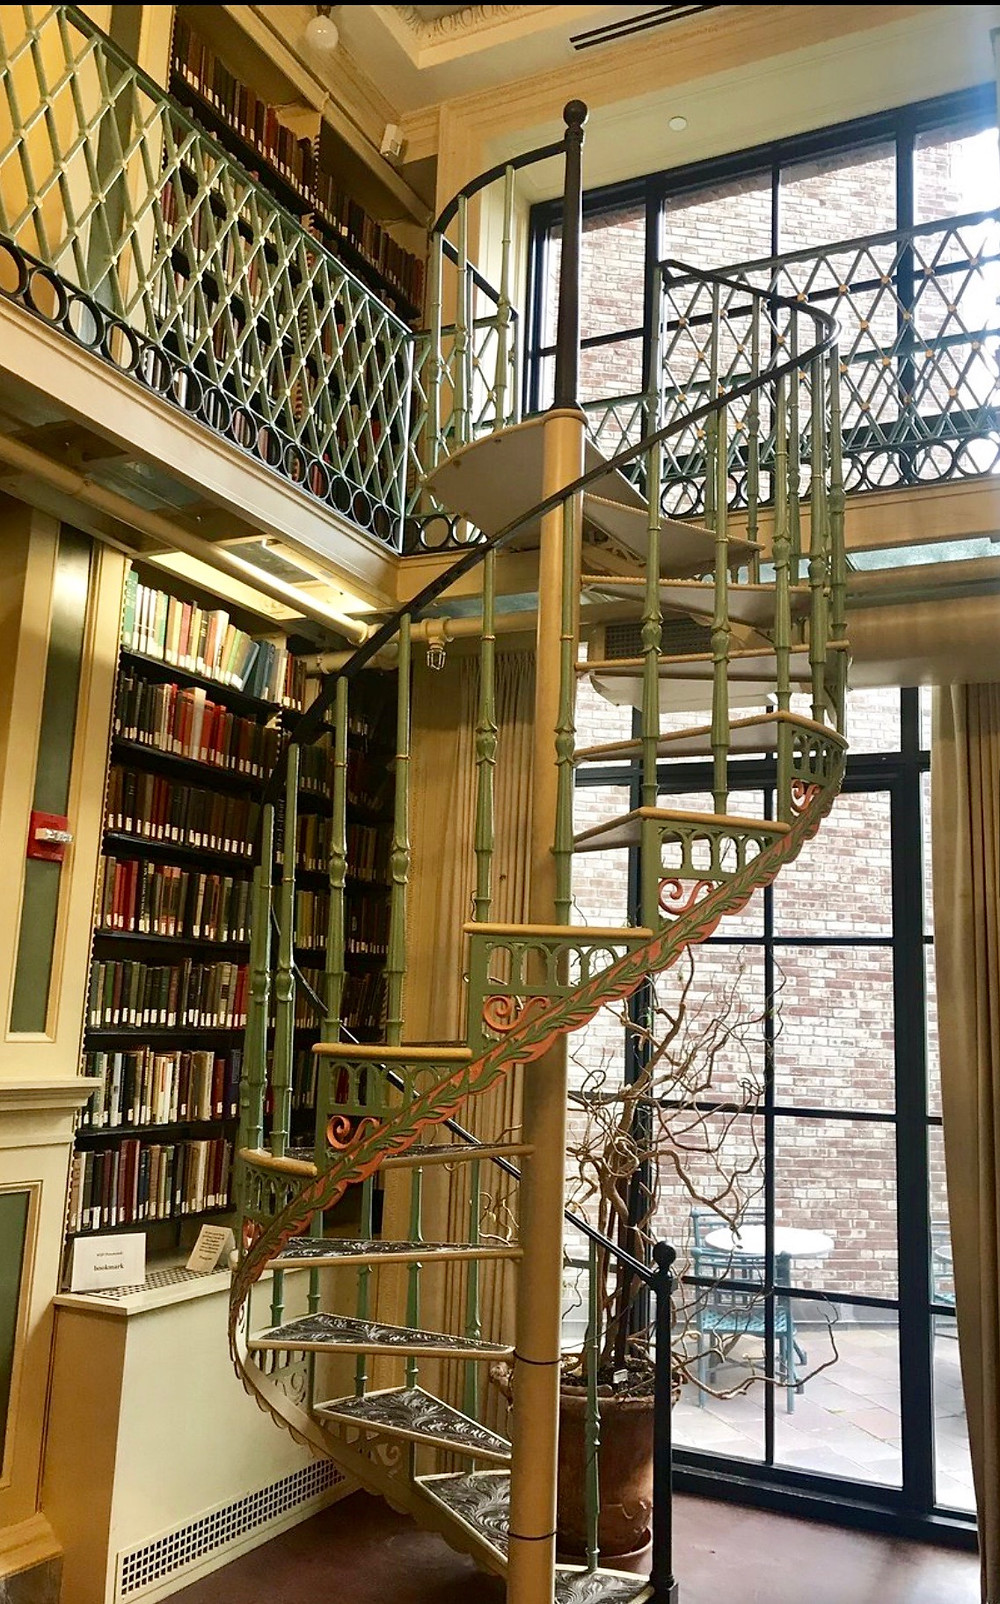 elegant spiral staircase on the second floor